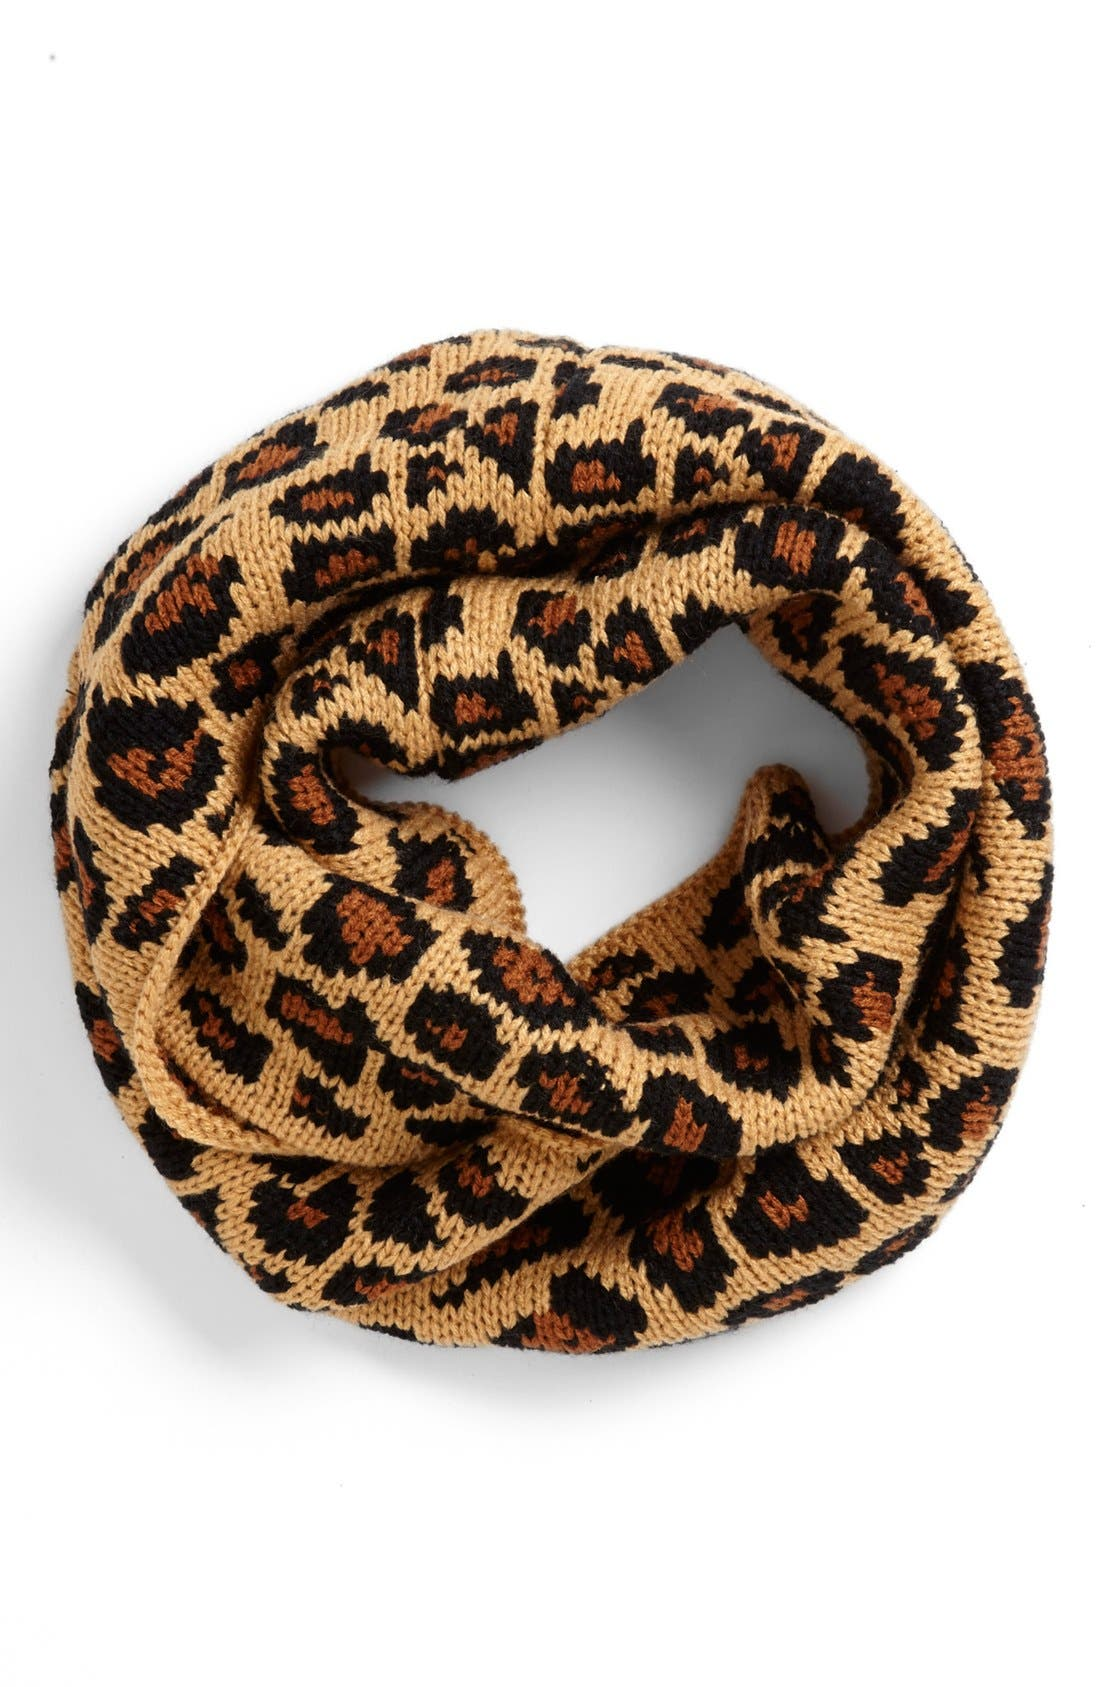 Alternate Image 1 Selected - Betsey Johnson 'Pretty Kitty' Infinity Scarf (Special Purchase)